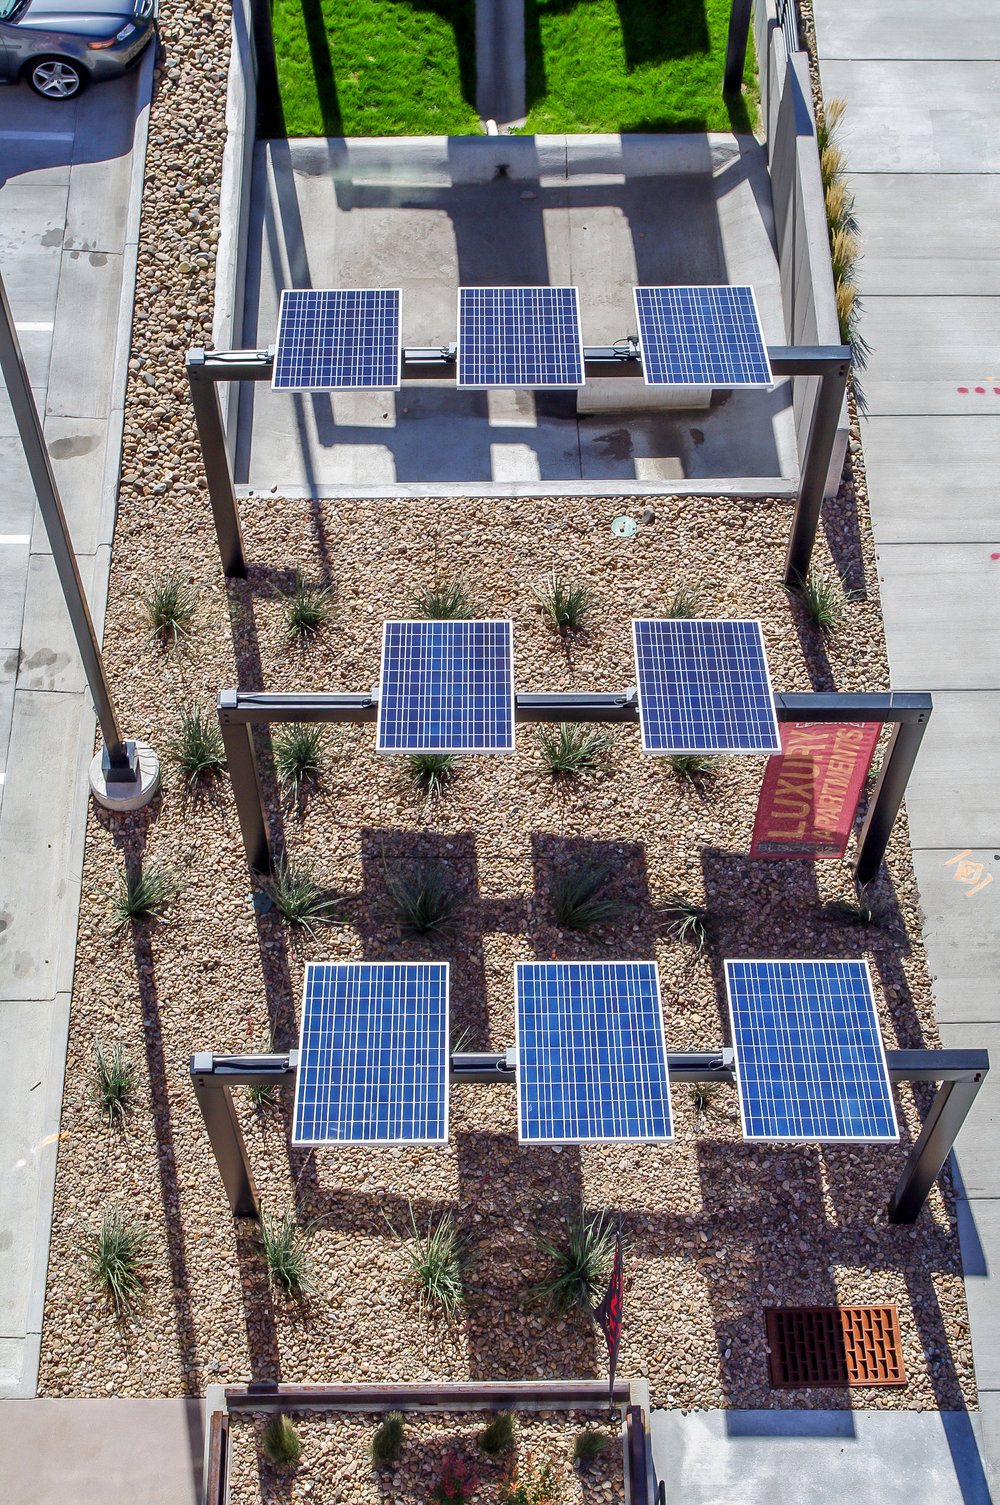 "<img src="" studioINSITE_Block_32_RiNo_Solar_Panels "" alt=""Urban Living, Multifamily Courtyard, Amenity Deck, Fire Pit, Grill Area, Shade Structure, Zen Garden, Infinity Pool,   Landscape Architecture, Denver, CO, Colorado Courtyards, Amenity Spaces, Great Courtyard Designs, RiNO Neighrborhood"" title=""Block 32 at RiNO""/>"